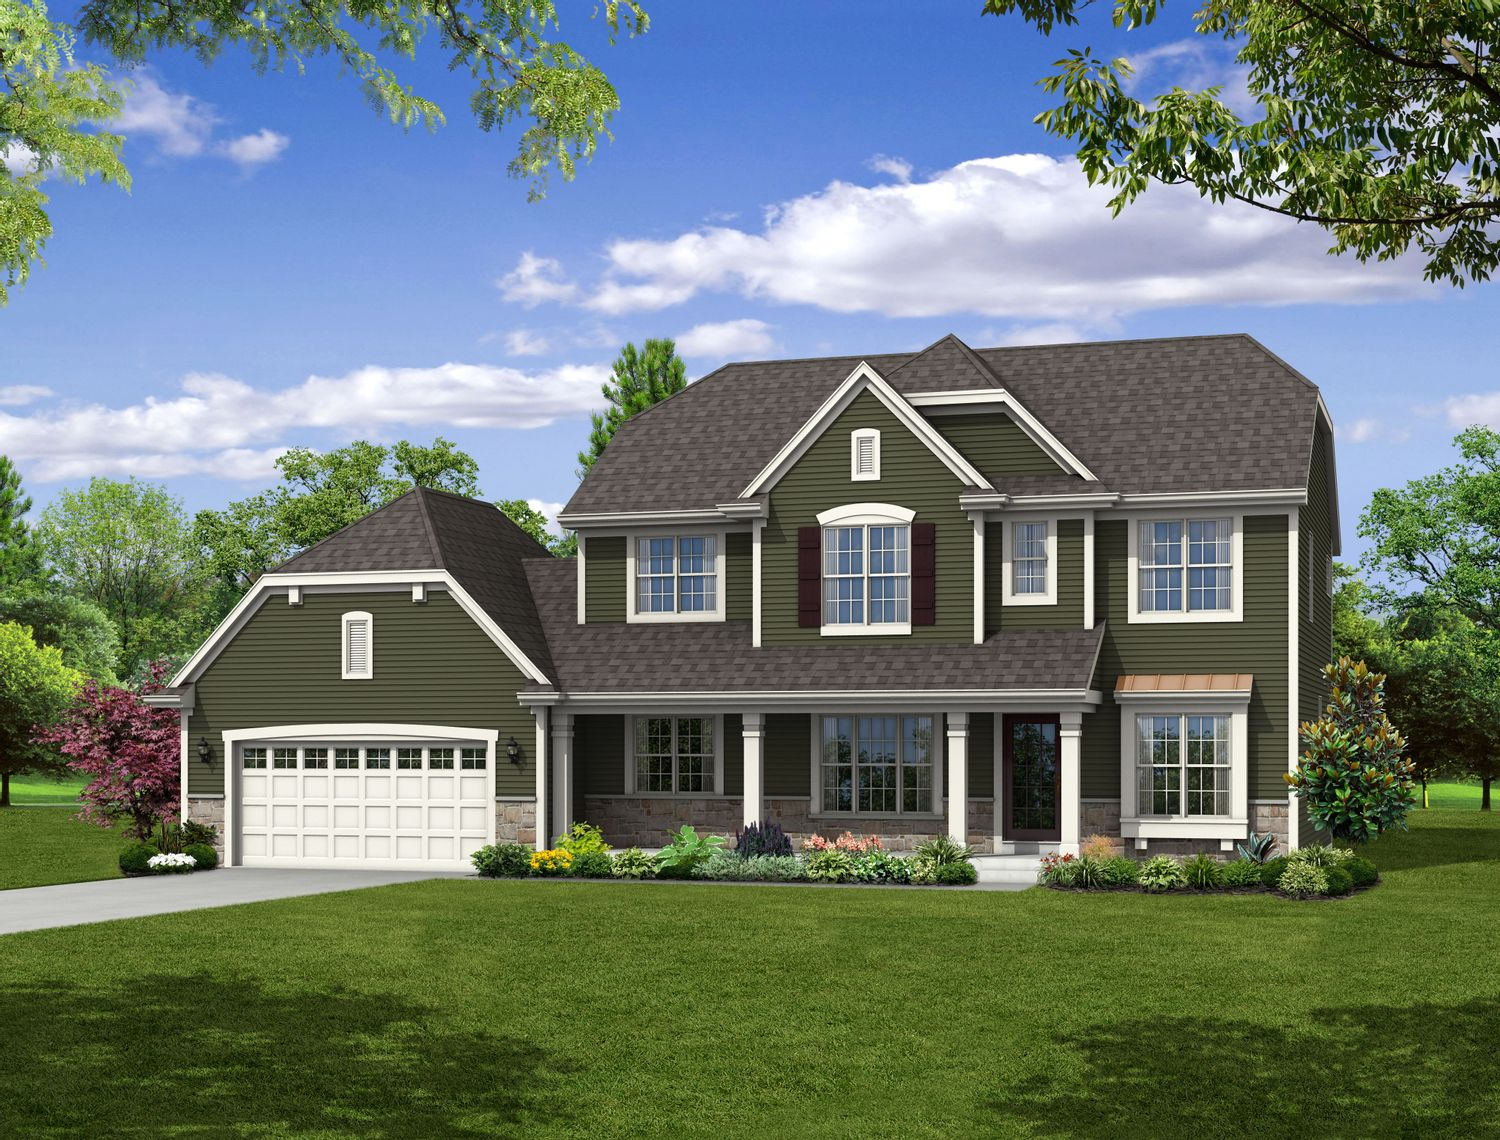 Single Family for Sale at Hunter Oaks - The Franklin, Plan 2514 Hwy T & Hunter Oaks Boulevard Watertown, Wisconsin 53094 United States